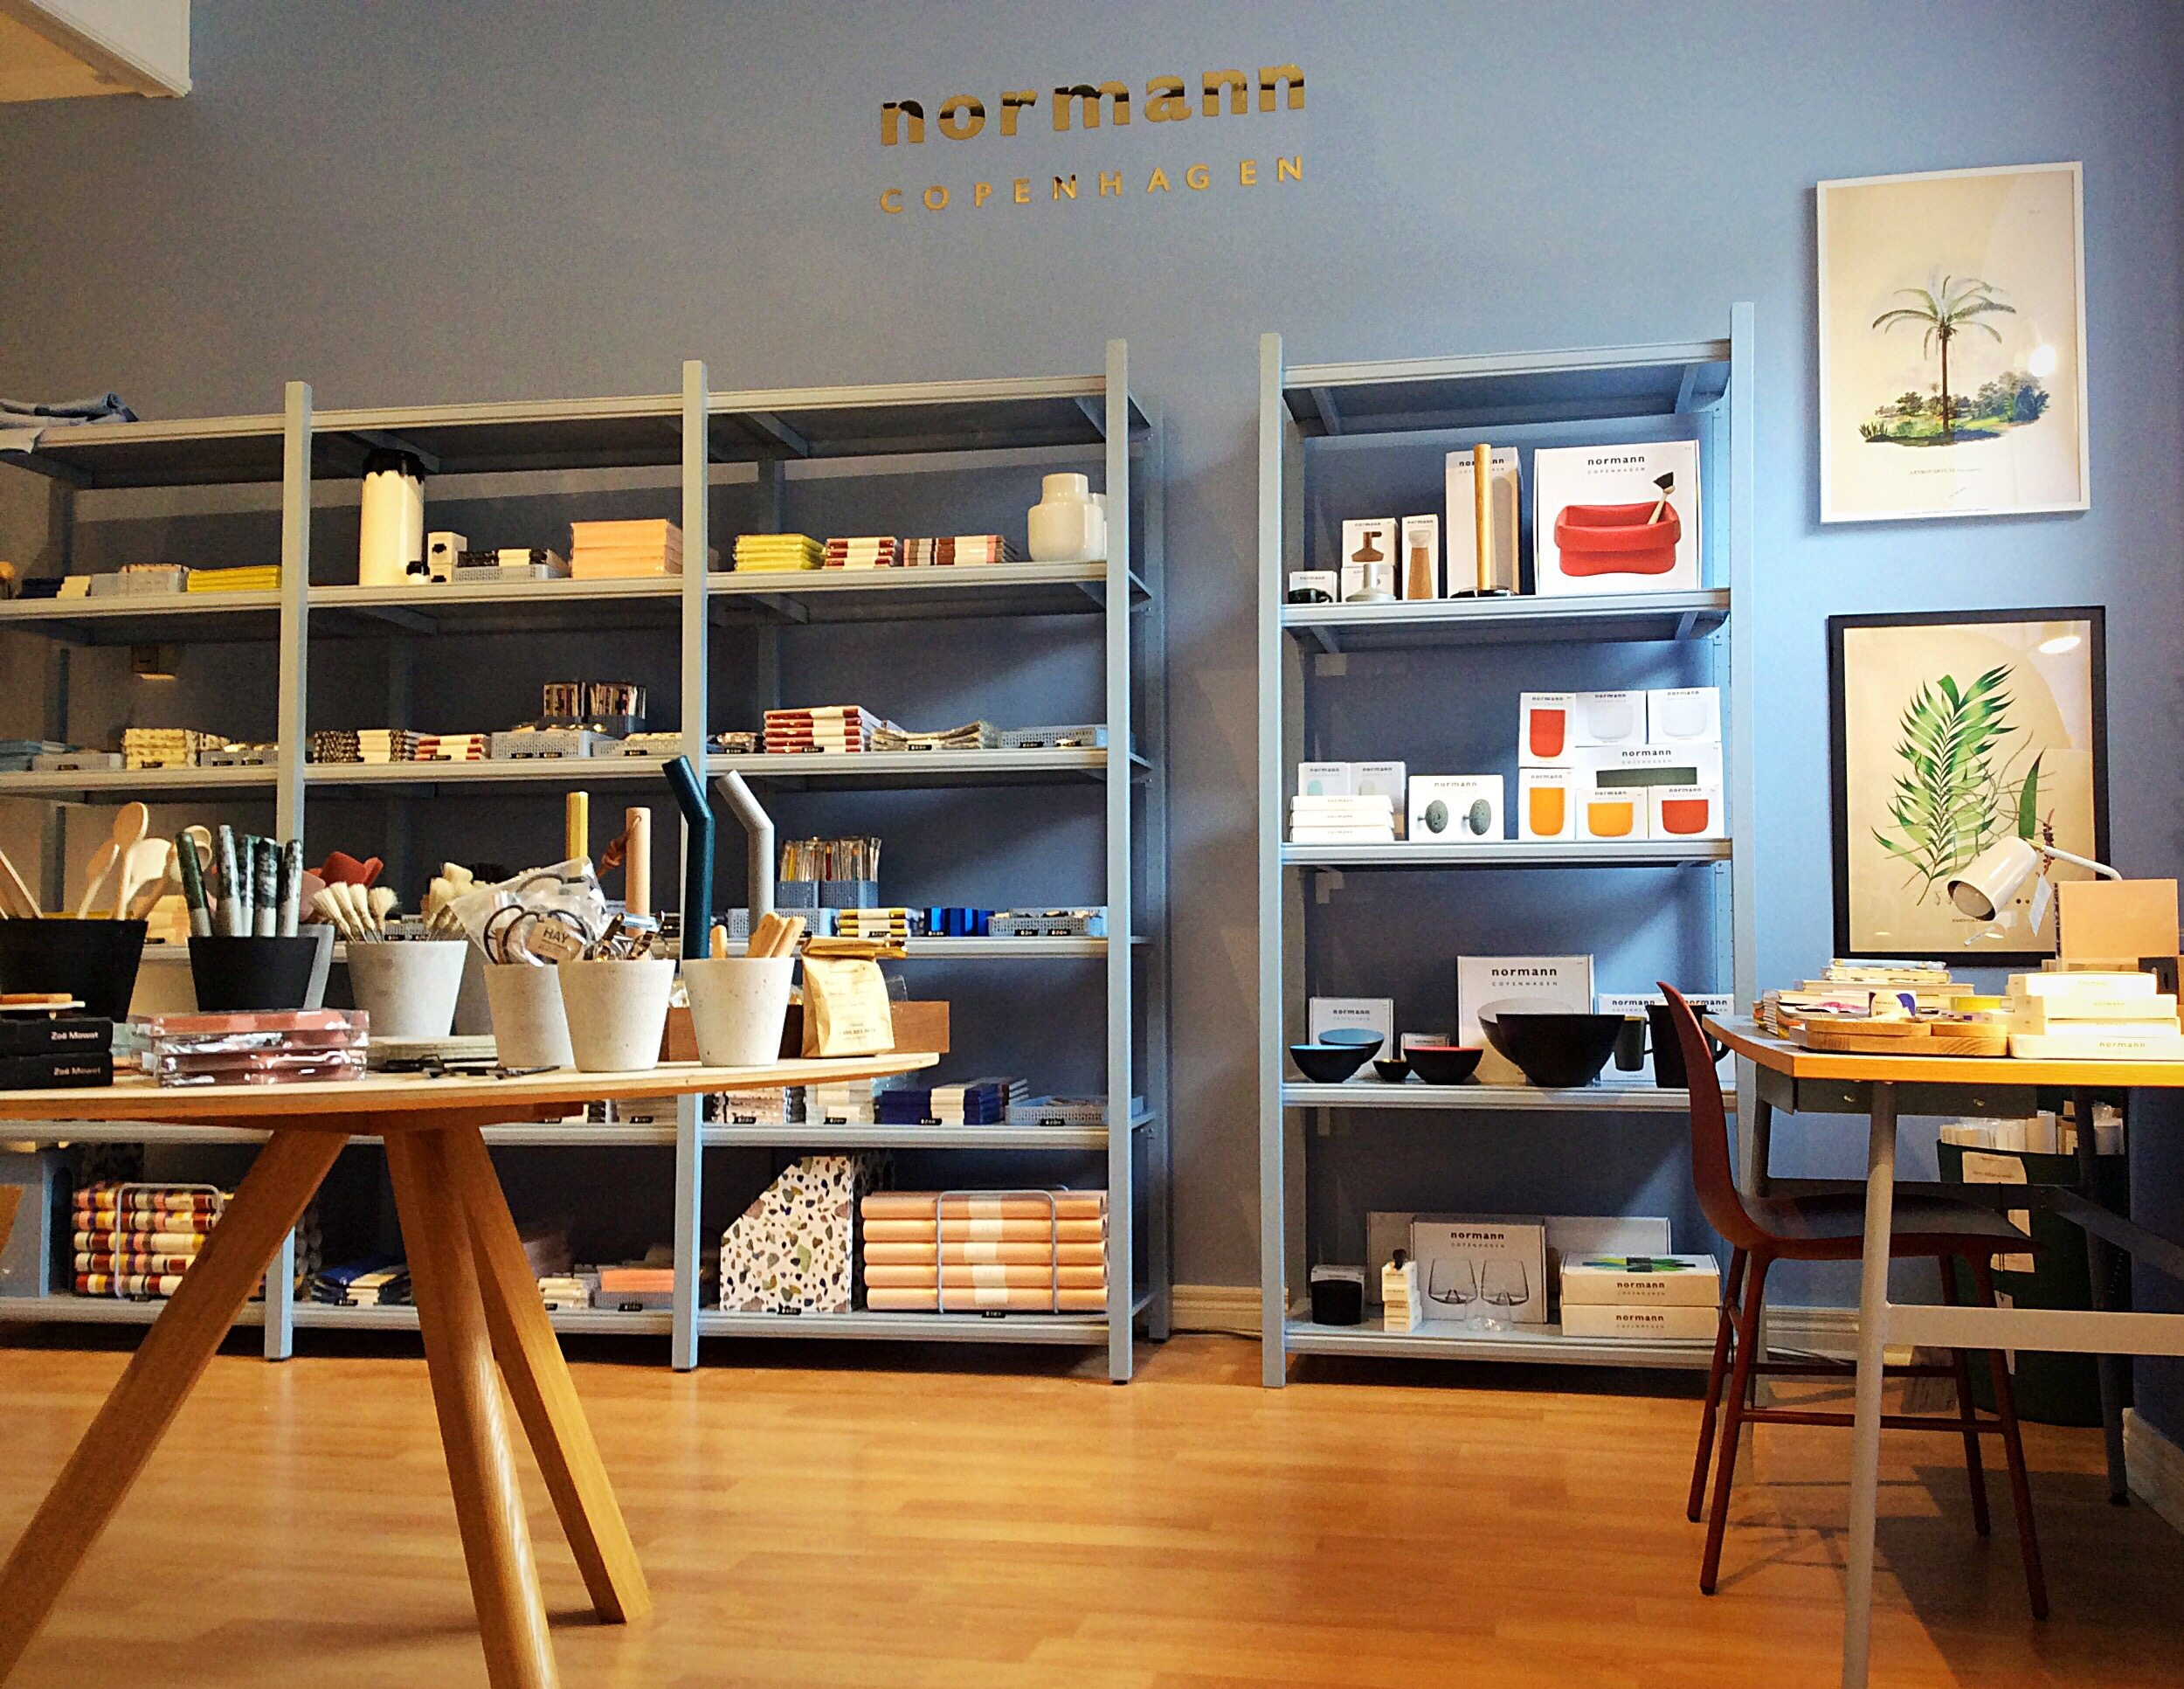 The new boutique will include Canada's only Normann Copenhagen Daily Fiction store